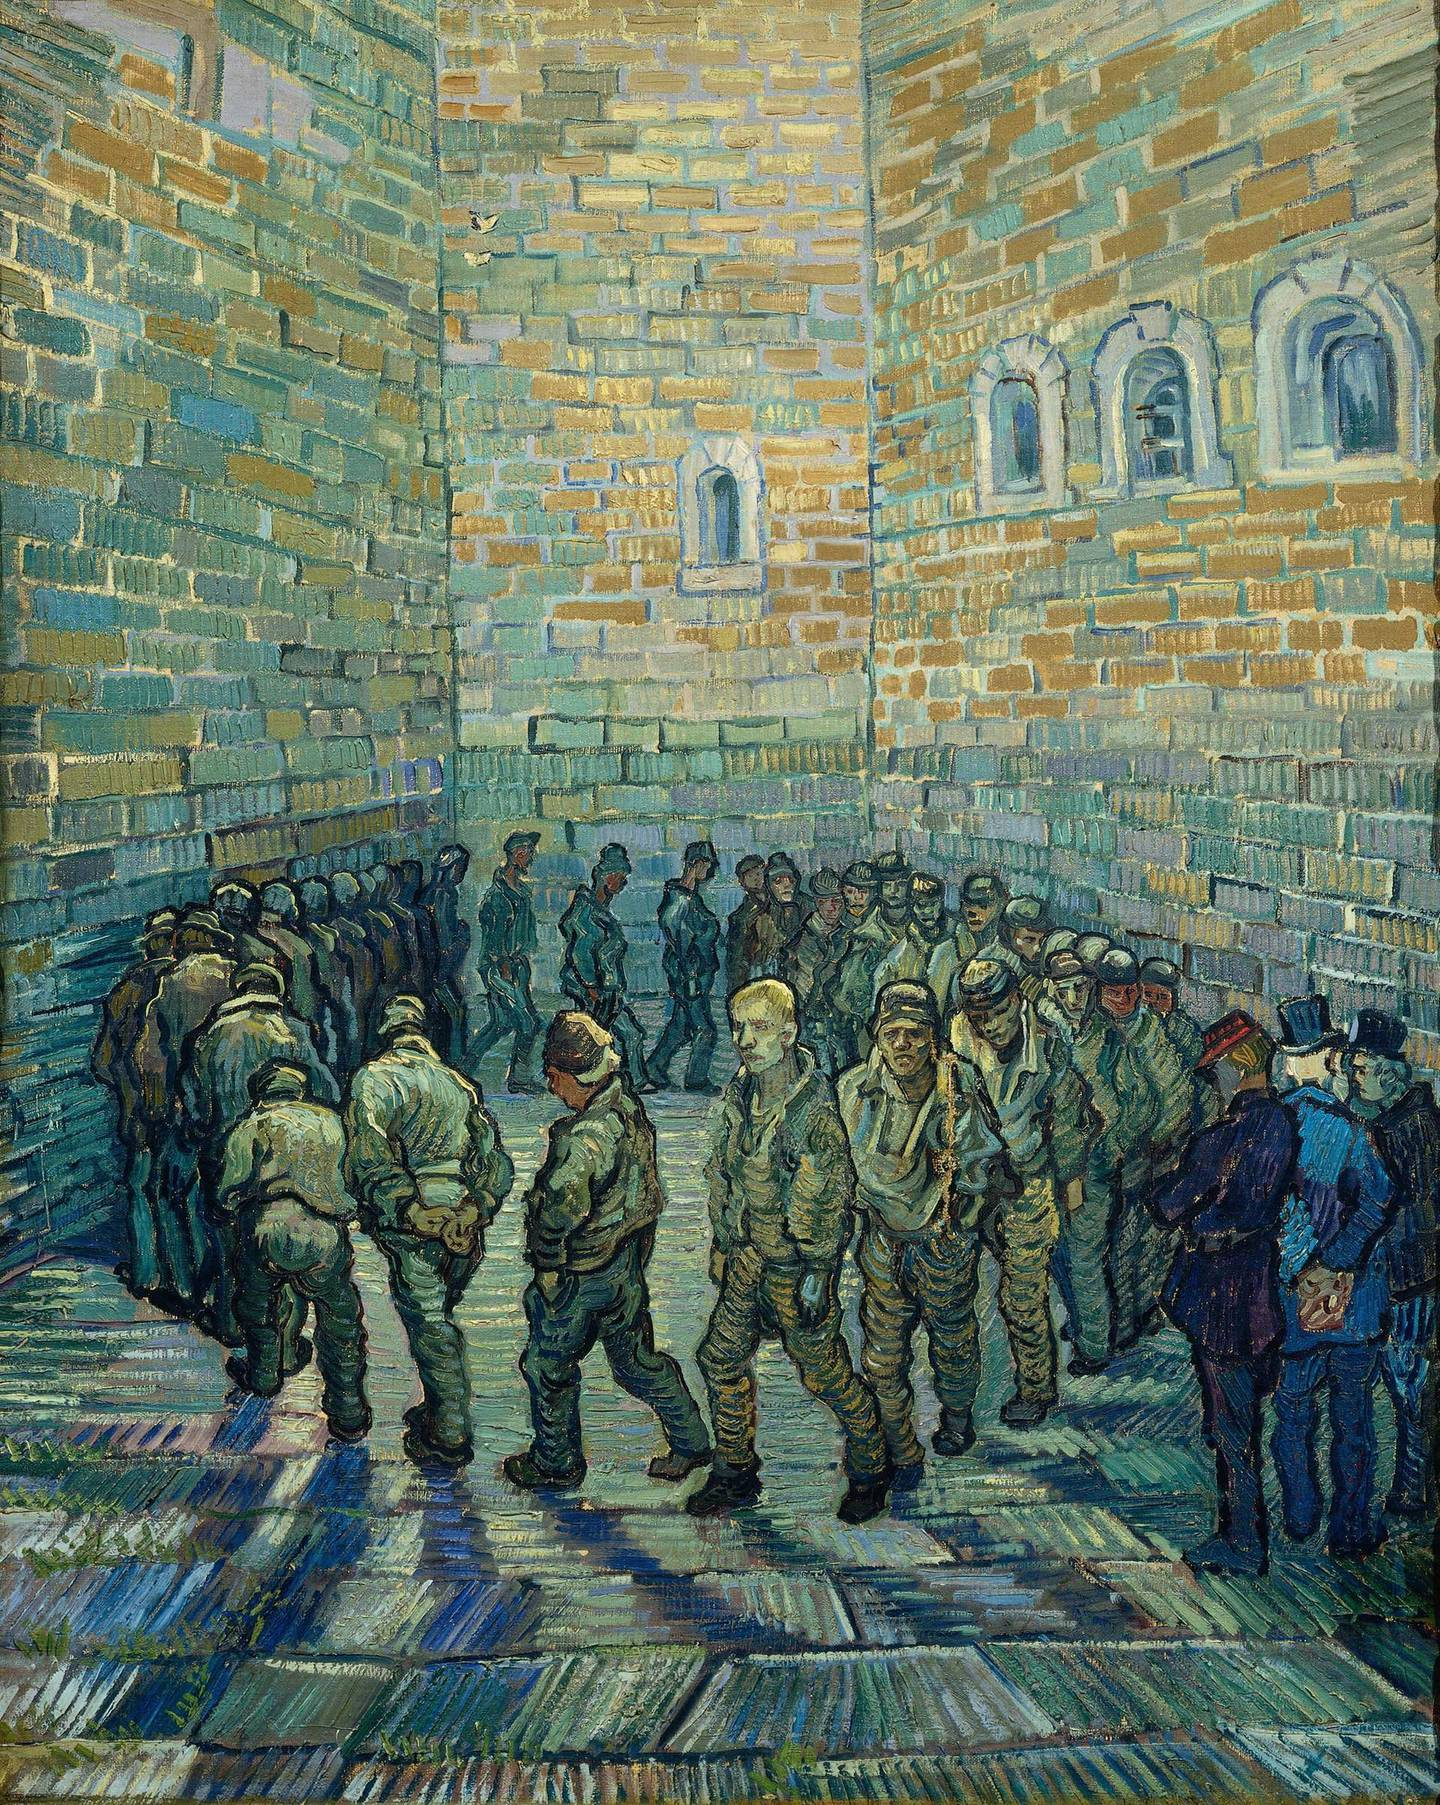 Vincent van Gogh (1853 – 1890) The Prison Courtyard 1890 Oil paint on canvas 800 x 640 mm © The Pushkin State Museum of Fine Arts, Moscow Gogh, Vincent van (1853-1890): Prisoners Exercising (Taking the Air in a Prison Yard). Moscow, Pushkin Museum*** Permission for usage must be provided in writing from Scala. ***